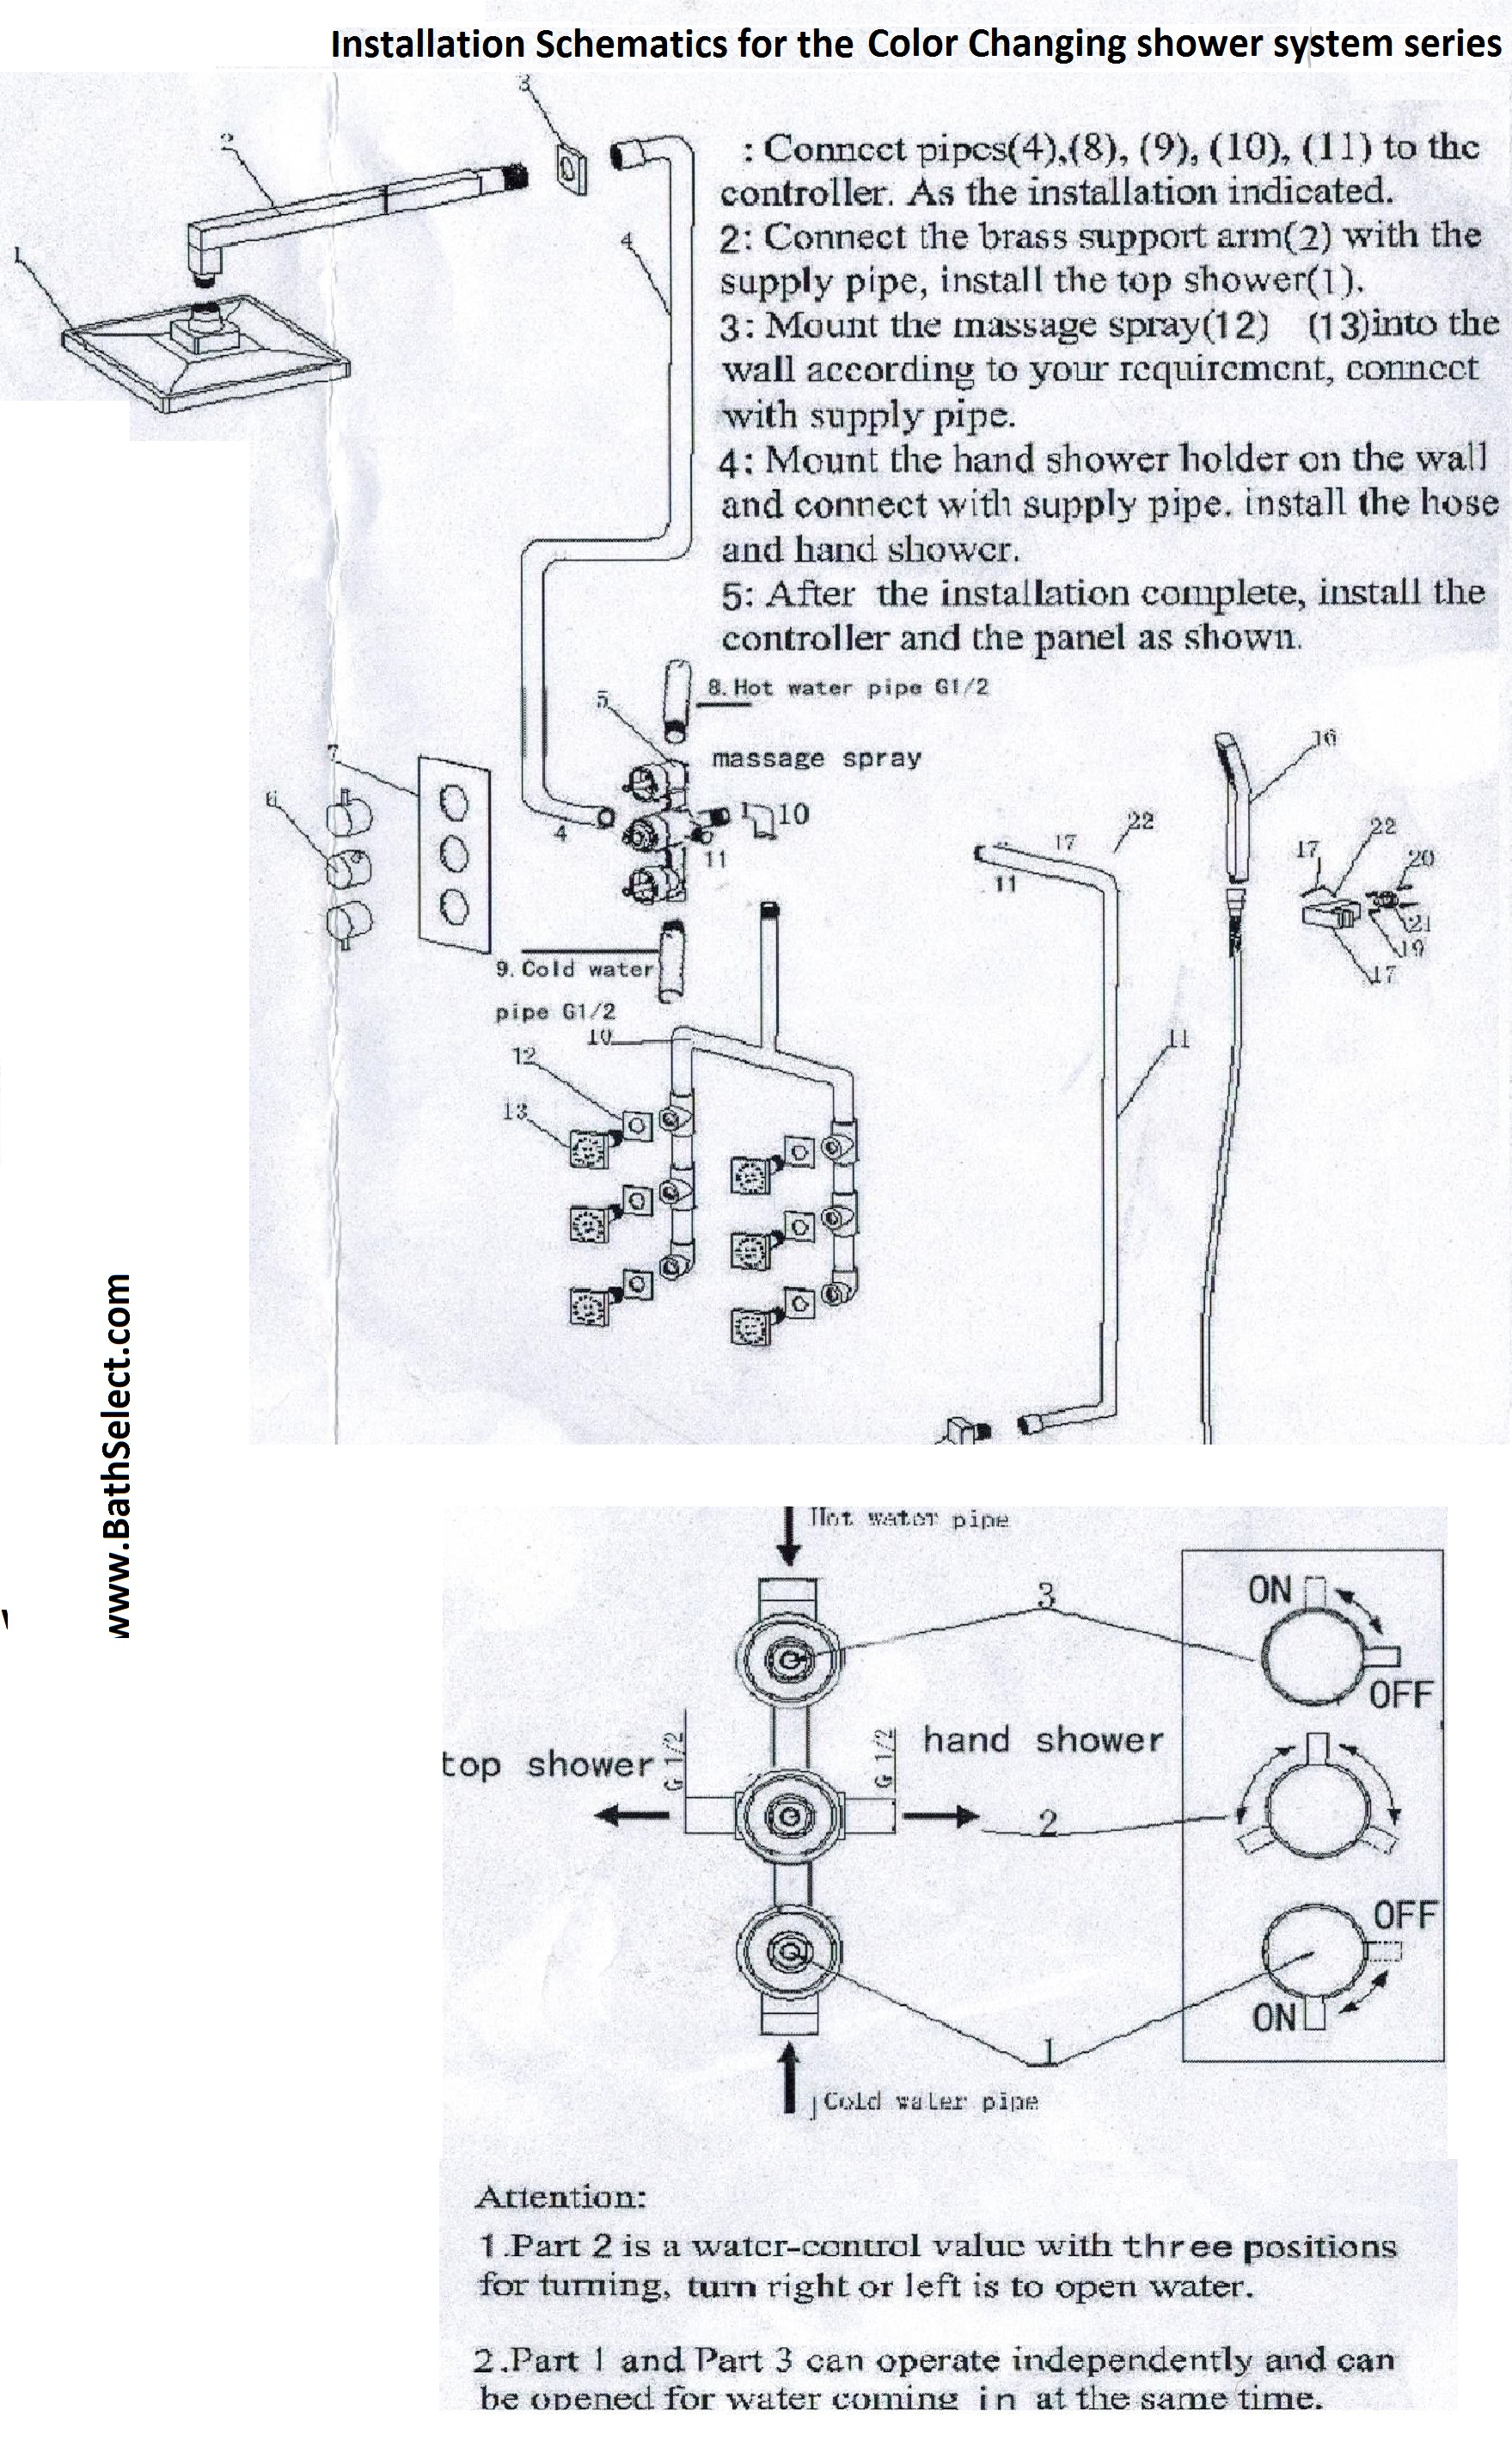 hight resolution of the shower system installation schematics diagram color changing temperature sensing led shower head